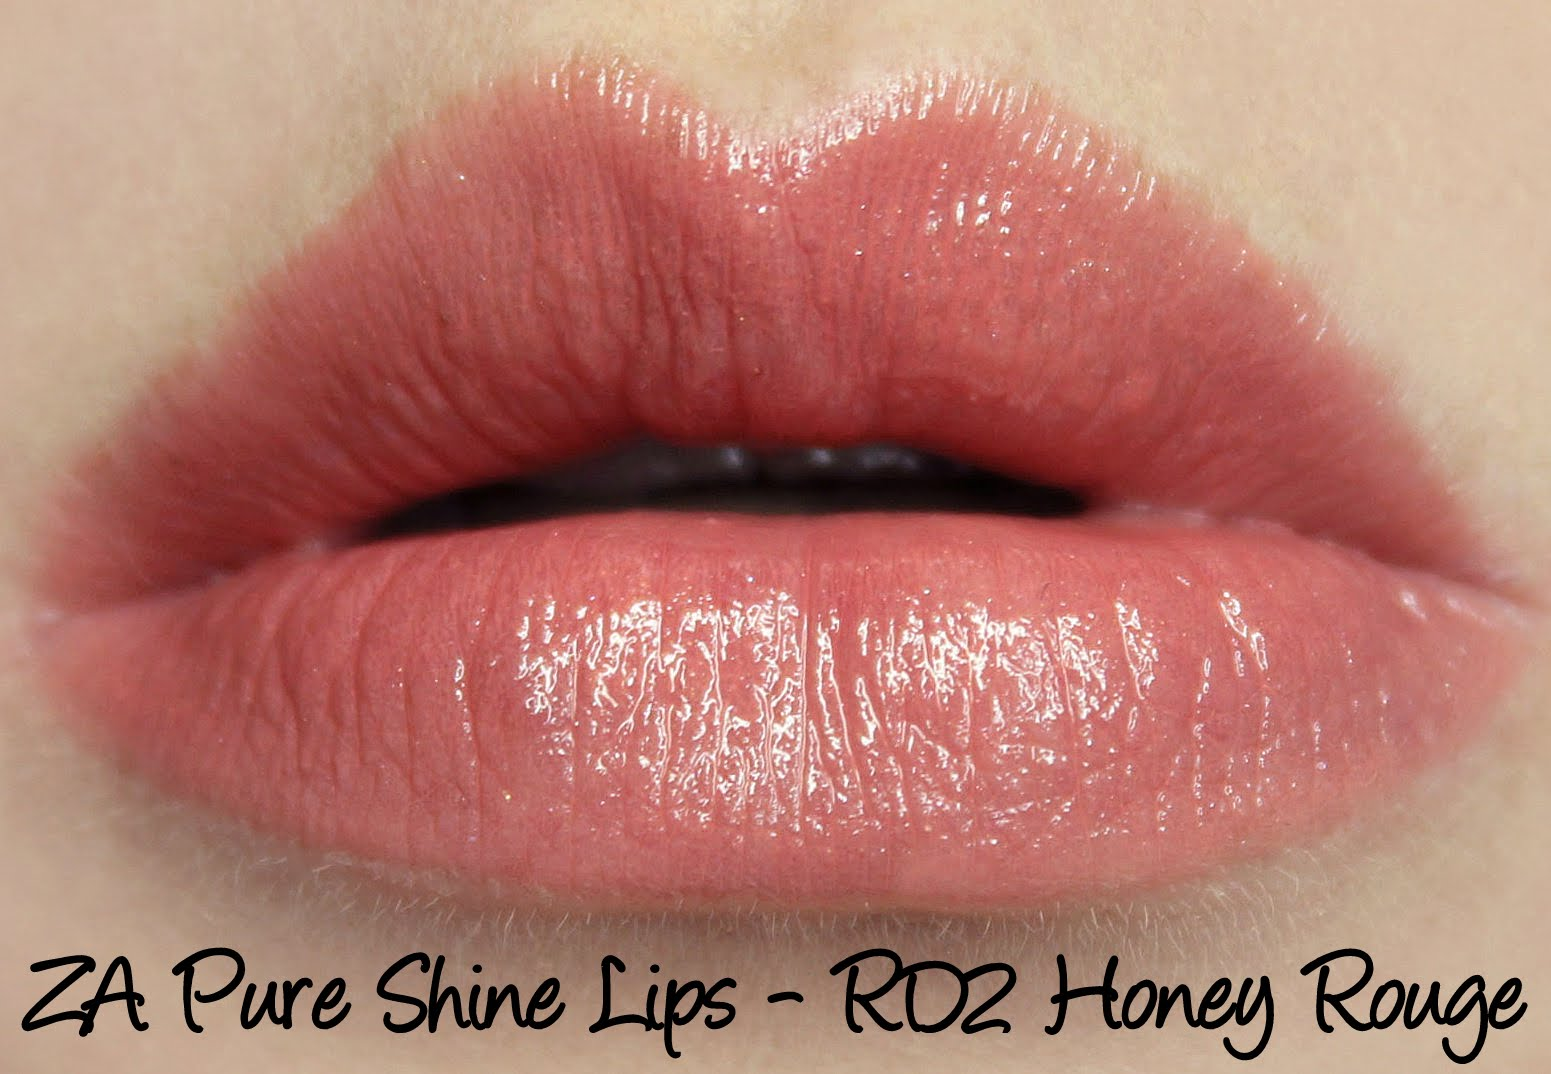 ZA Pure Shine Lips RD2 Honey Rouge lipstick review